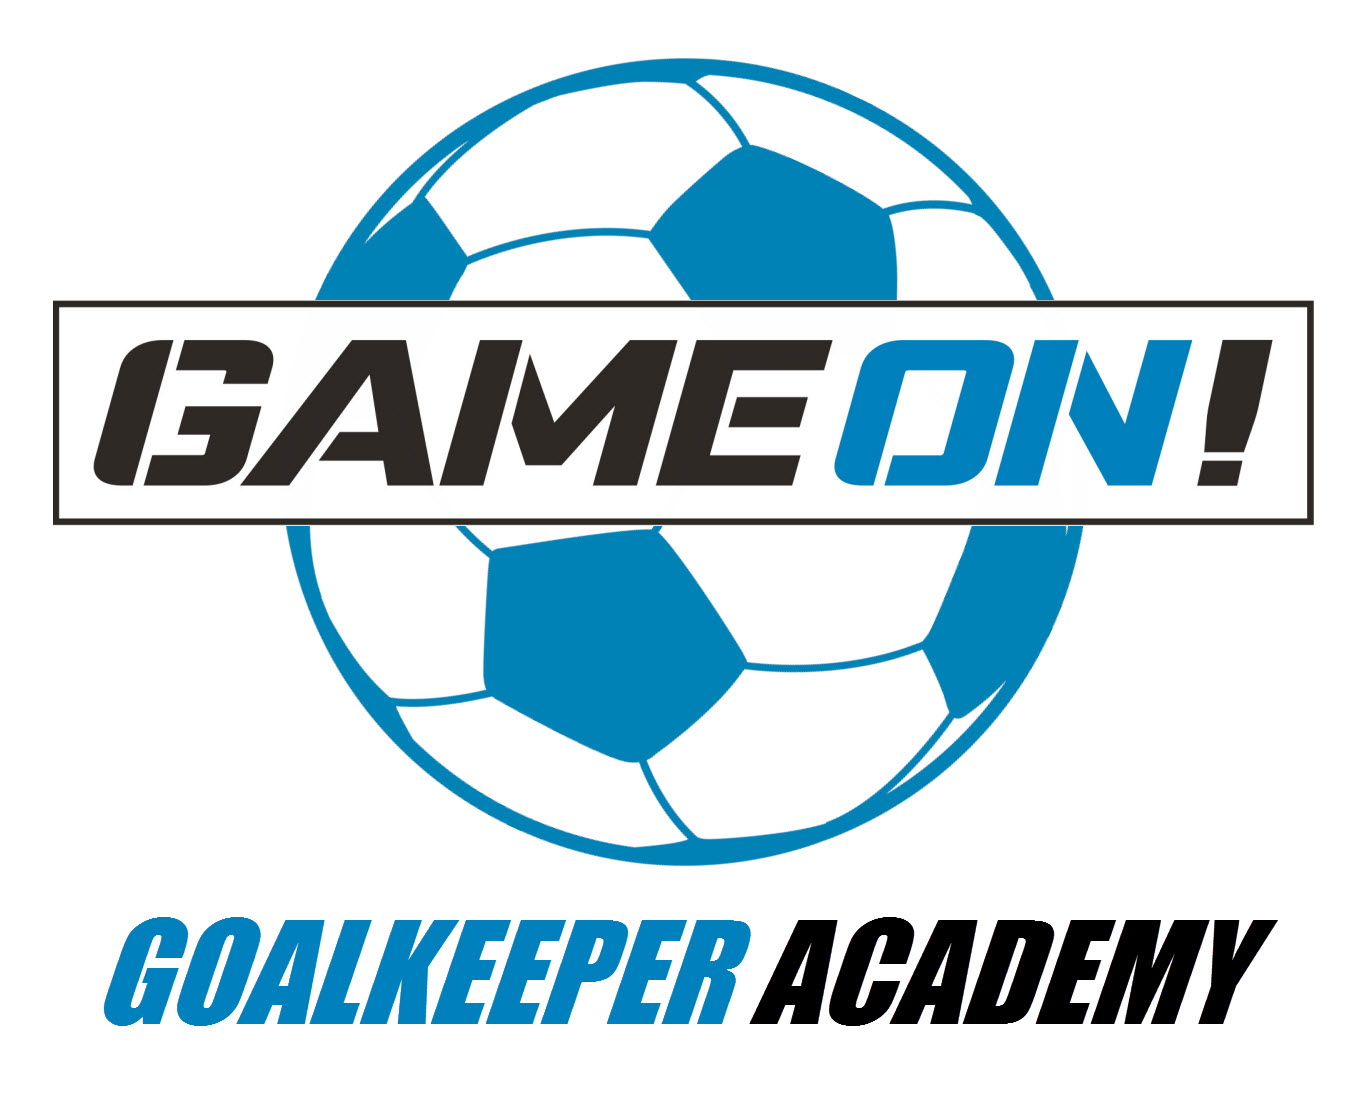 Game On Goalkeeper Academy